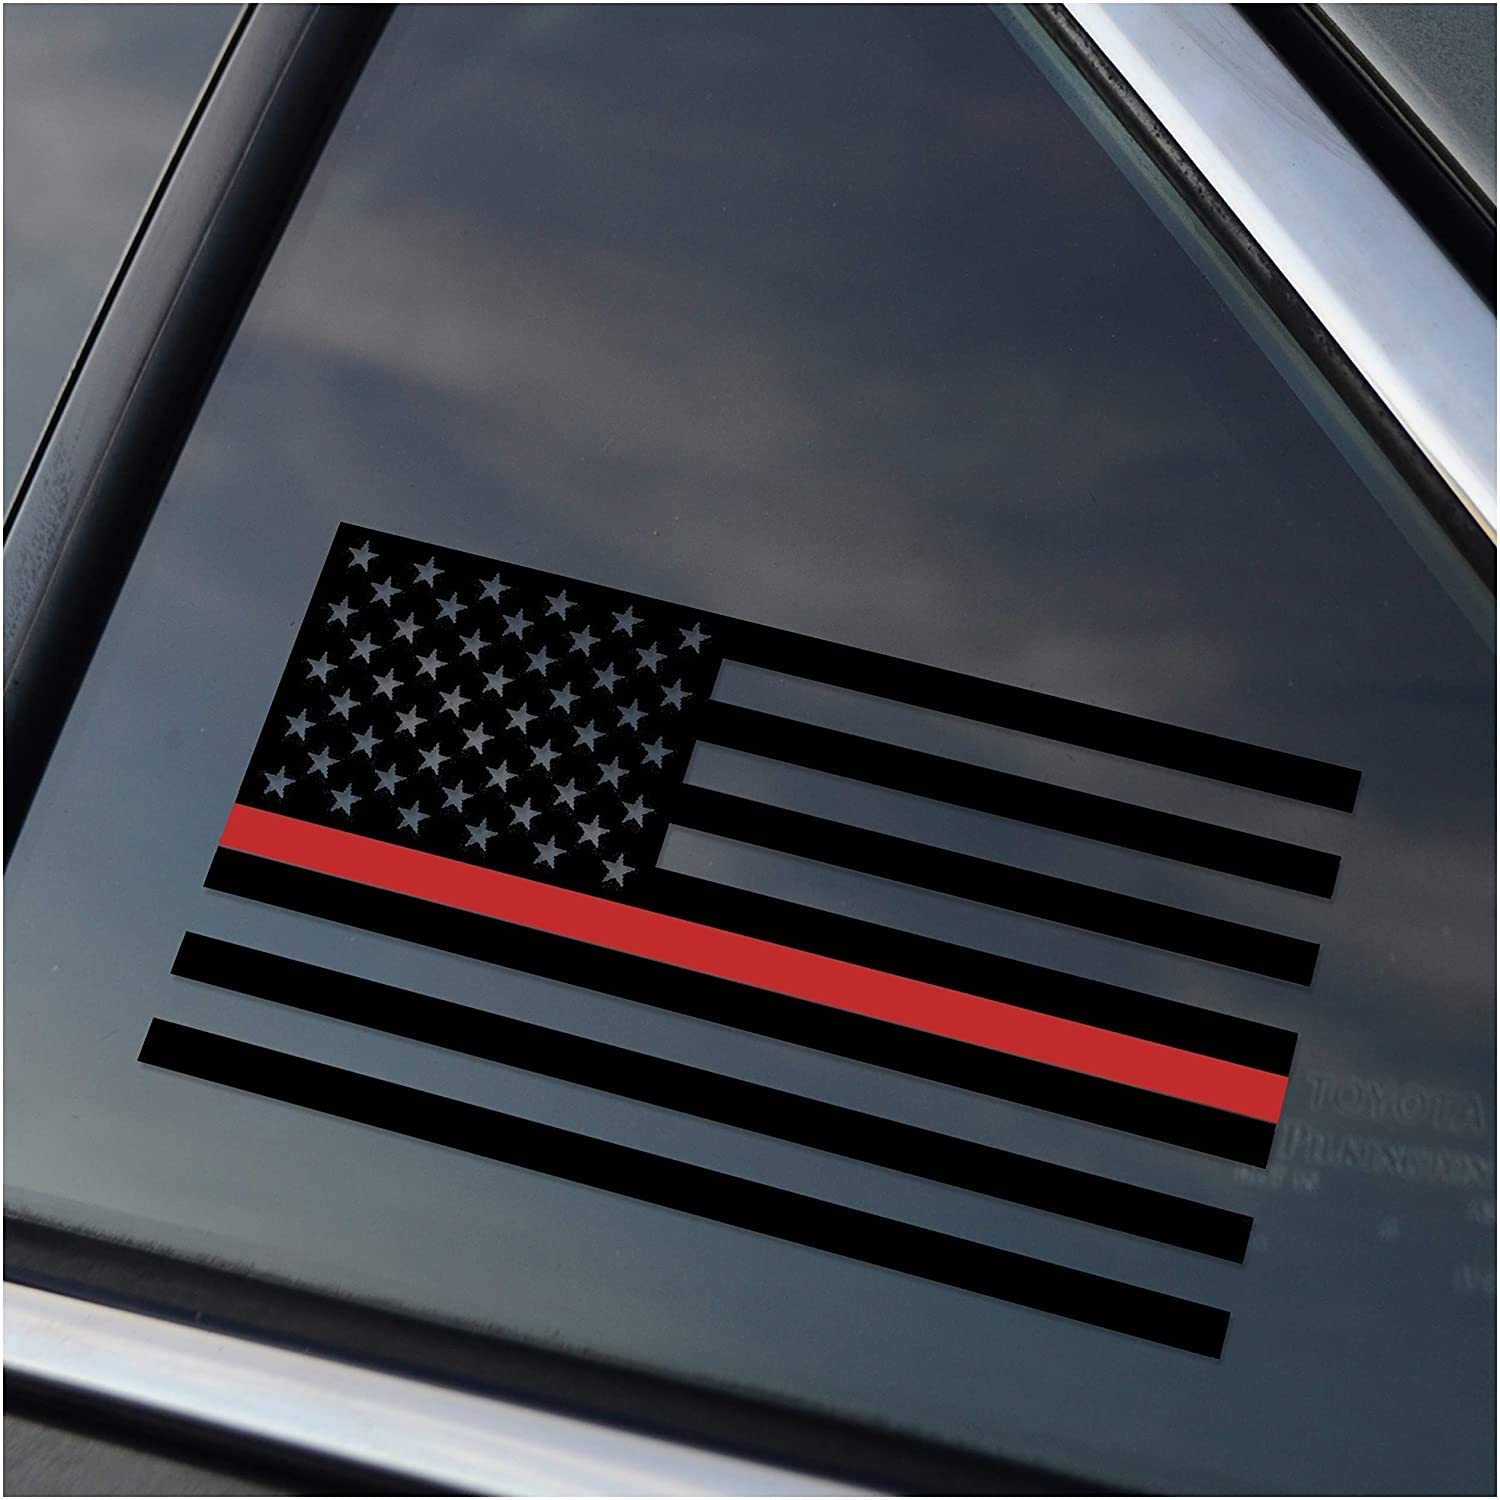 Thin Red Line Firefighter Support Vinyl Car Window Decal Sticker | [6.75 inches x 3.5 inches]""